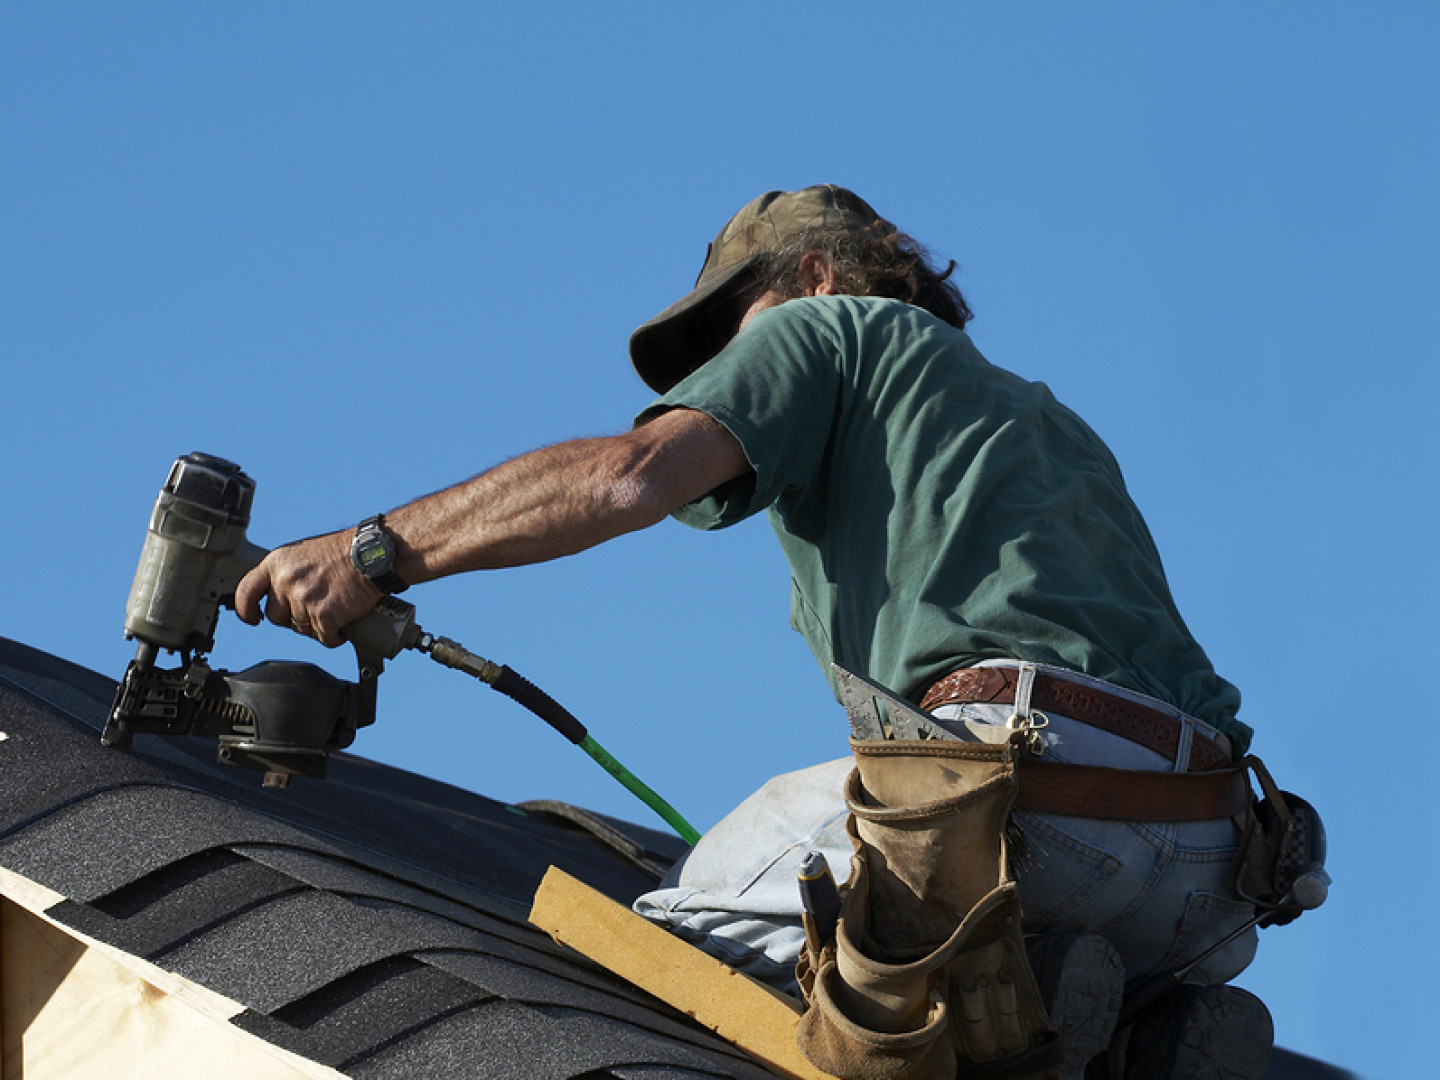 Roof Repair Roofing Services Greensboro Fayetteville Nc M D Construction Of Fayetteville